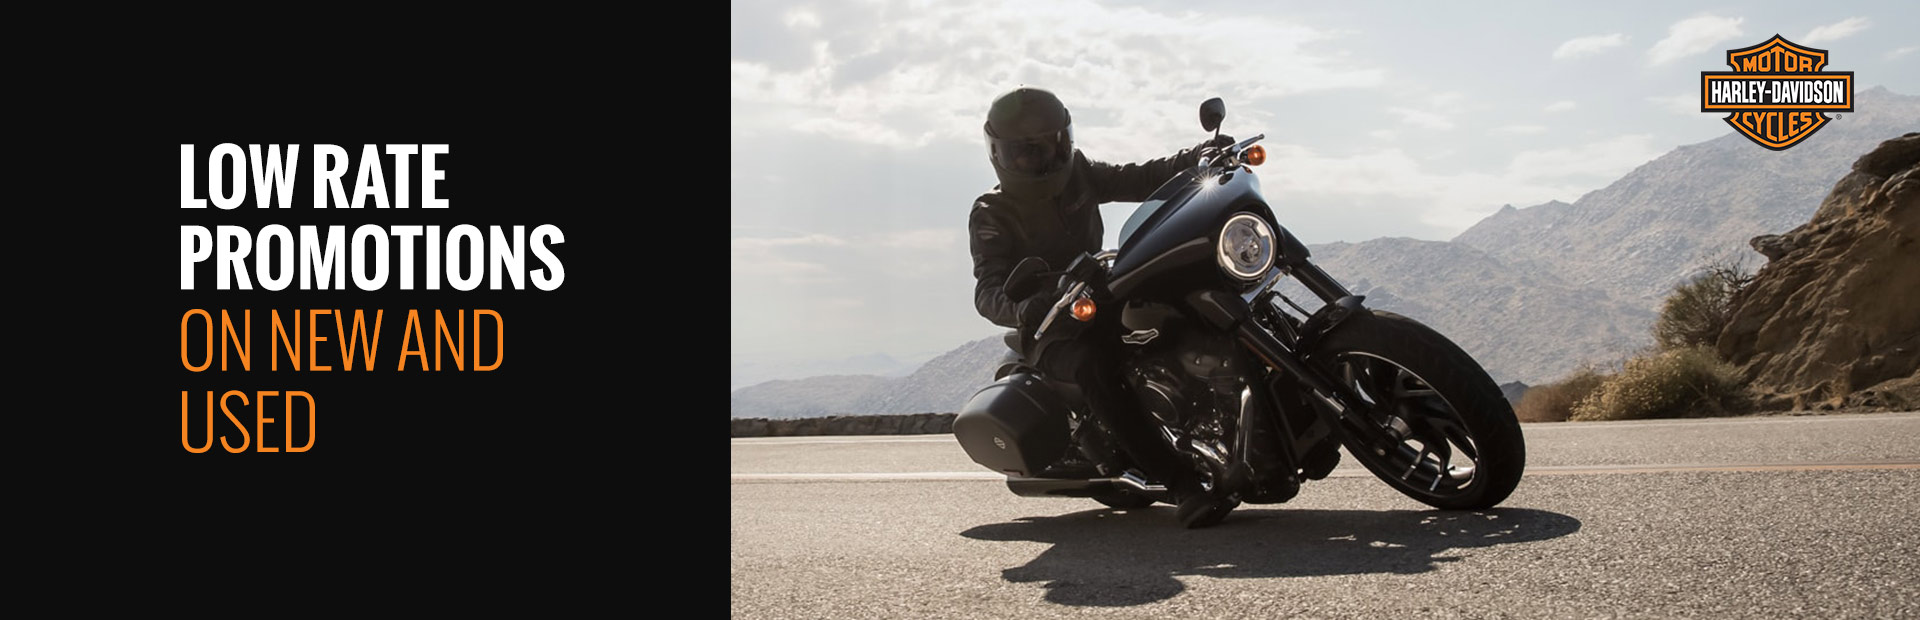 Harley-Davidson®: Low Rate Promotions On New And Used